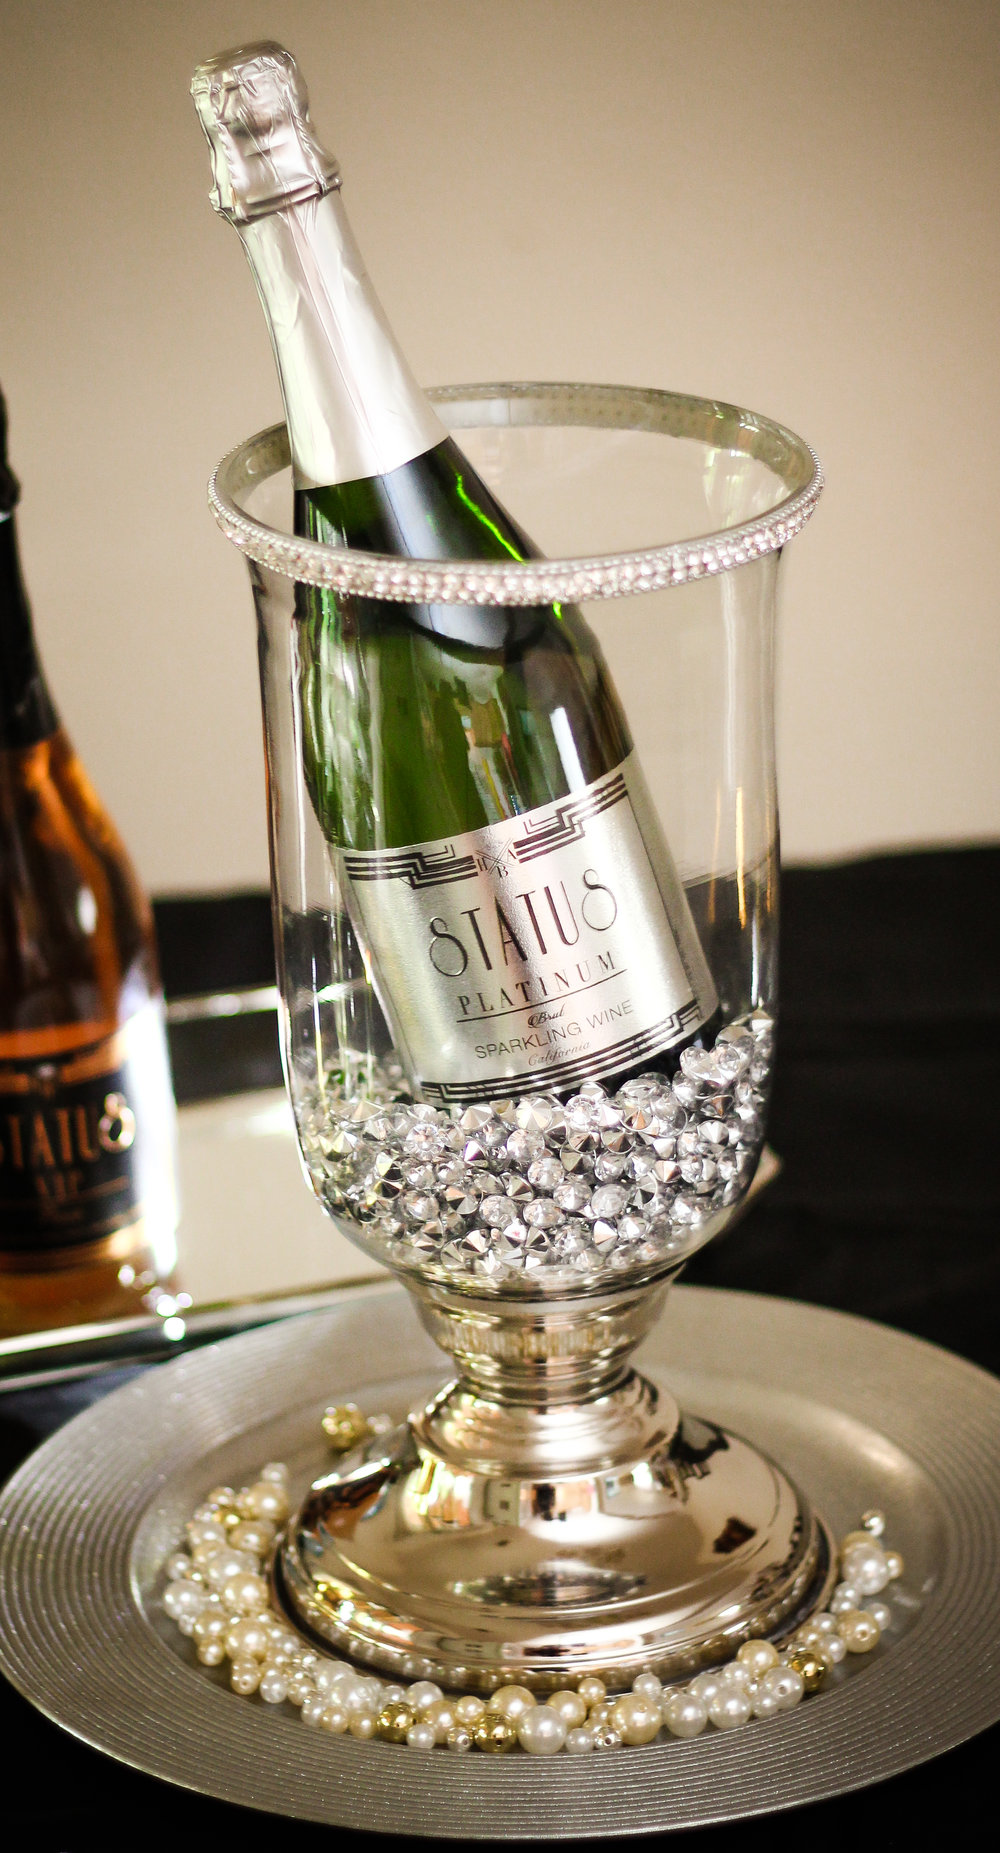 Brut by Status delivers a refreshing taste that is crisp, clean, and pleasant. This Brut sparkling wine is filled with tree fruit flavors and is well balanced with a long finish. Its a perfect way to enhance any occasion. You can conveniently enjoy a bottle of Status Brut anytime, anywhere!